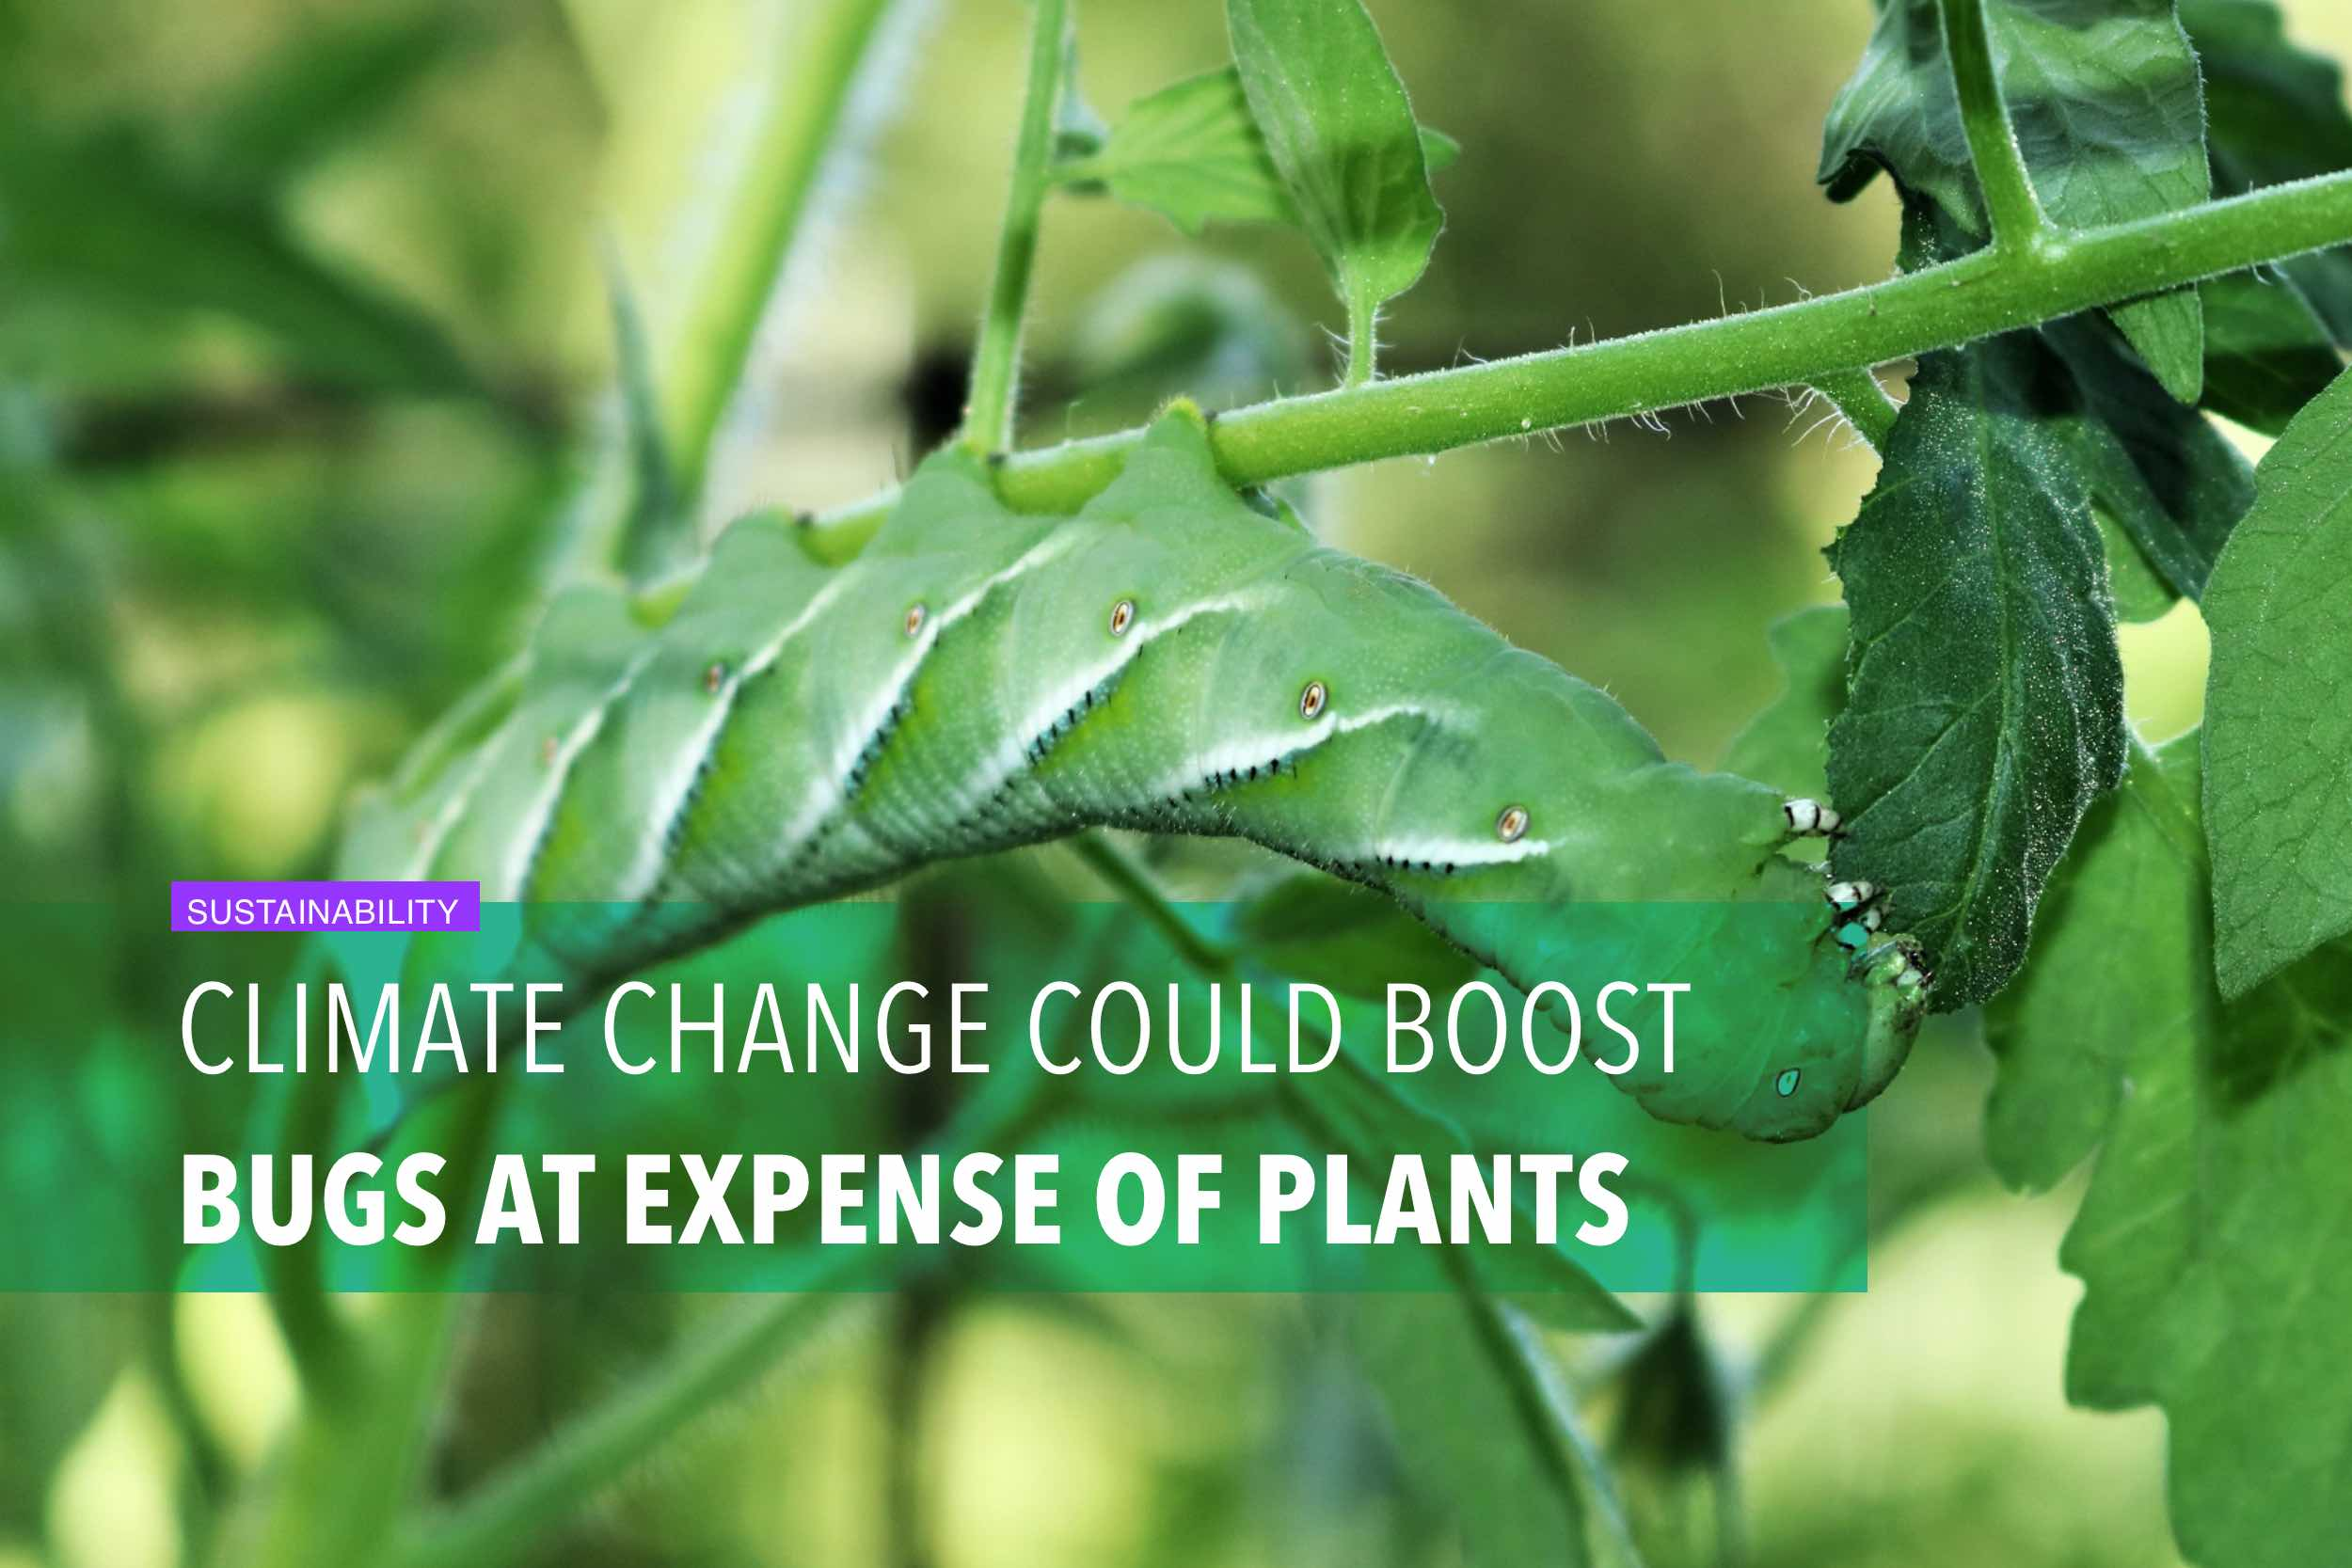 Climate change could boost bugs at expense of plants